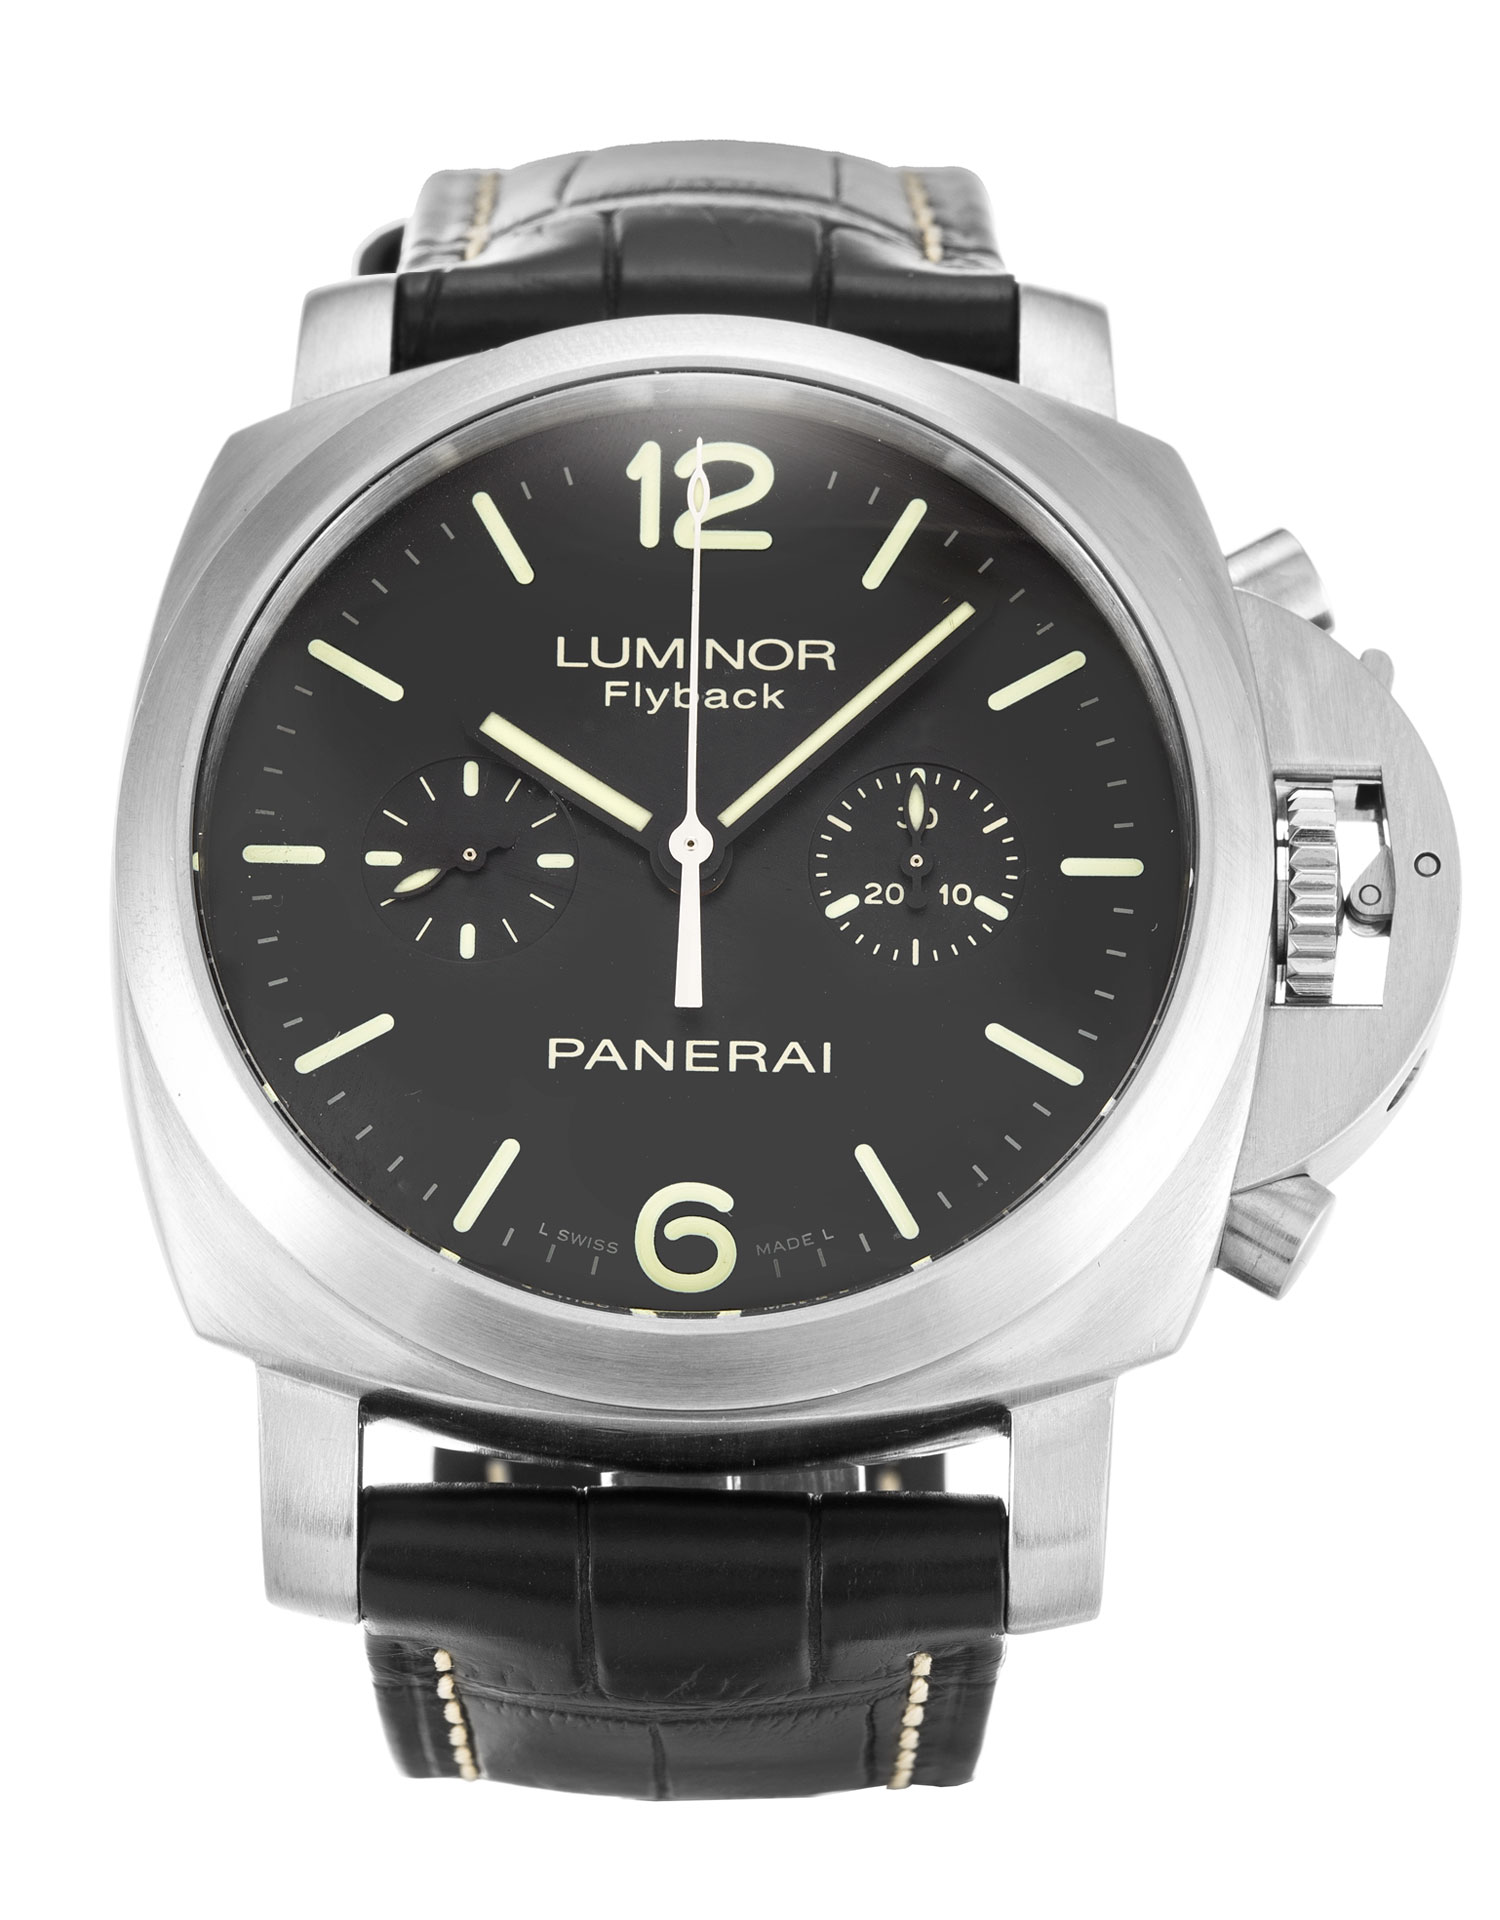 amazing replica model—panerai watch with special characteristics here (8-day power reserve movement)